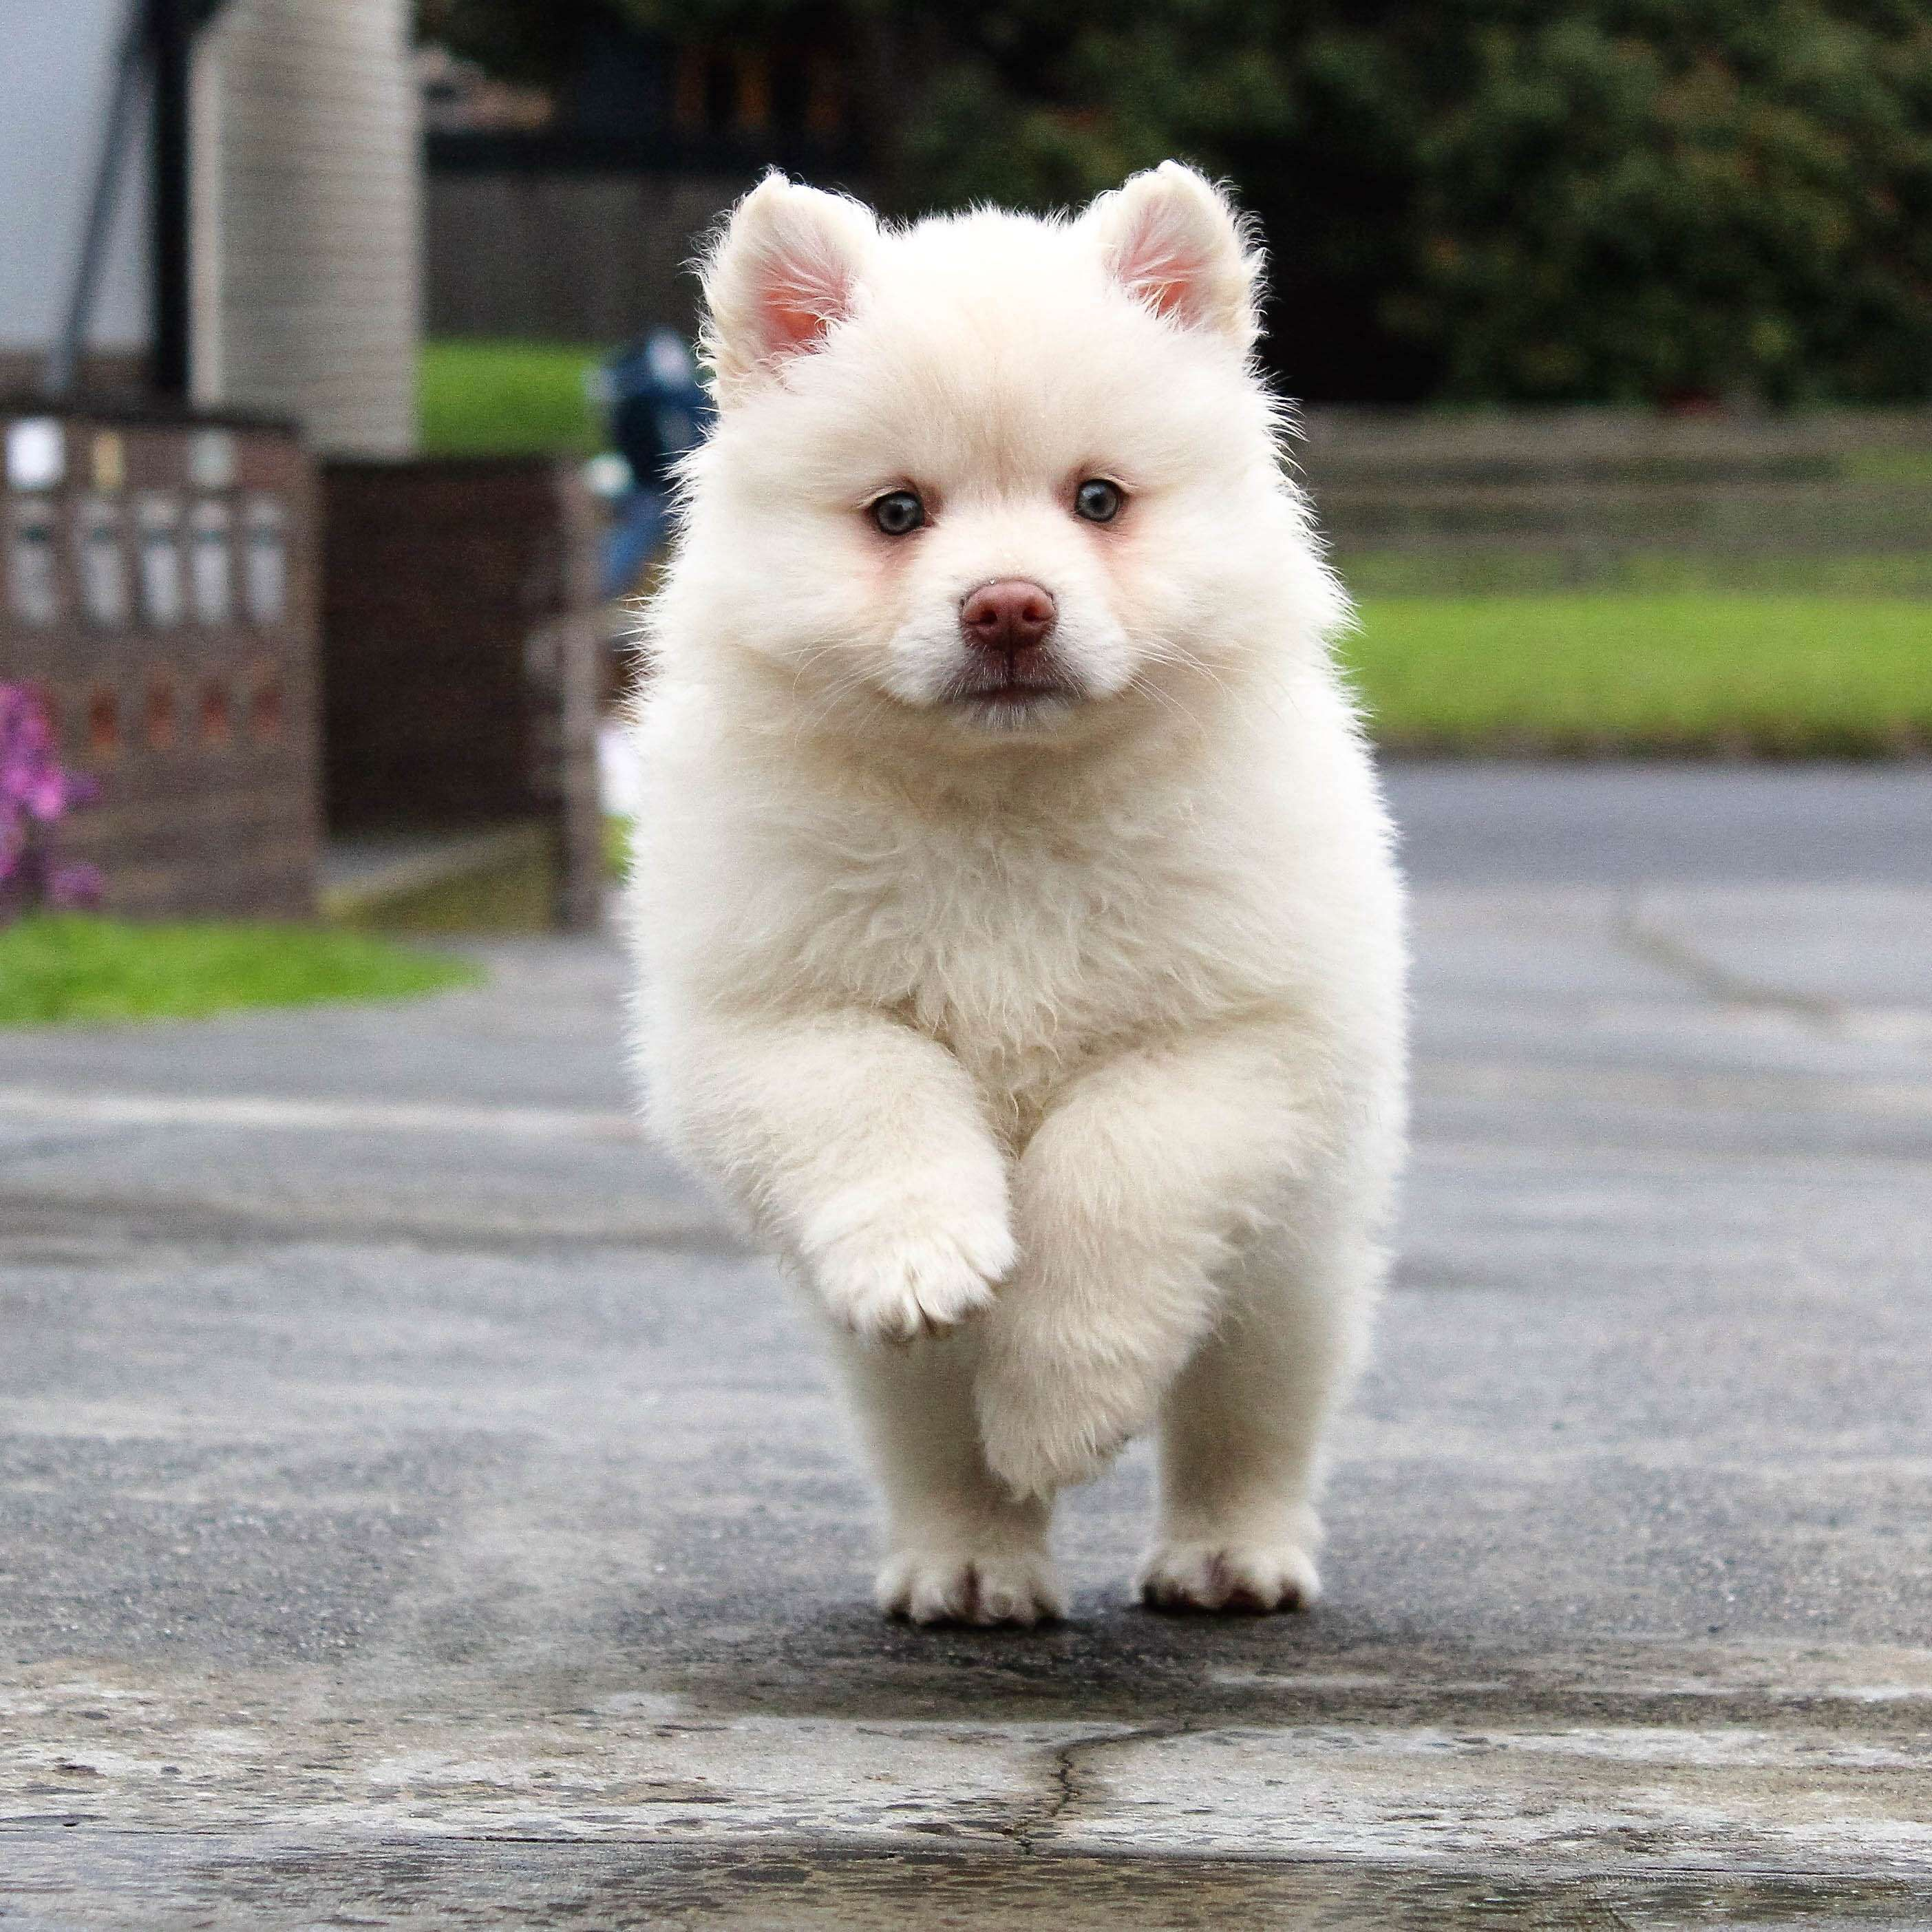 Active Adorable Animal Baby Breed Canine Cute Dog Dog